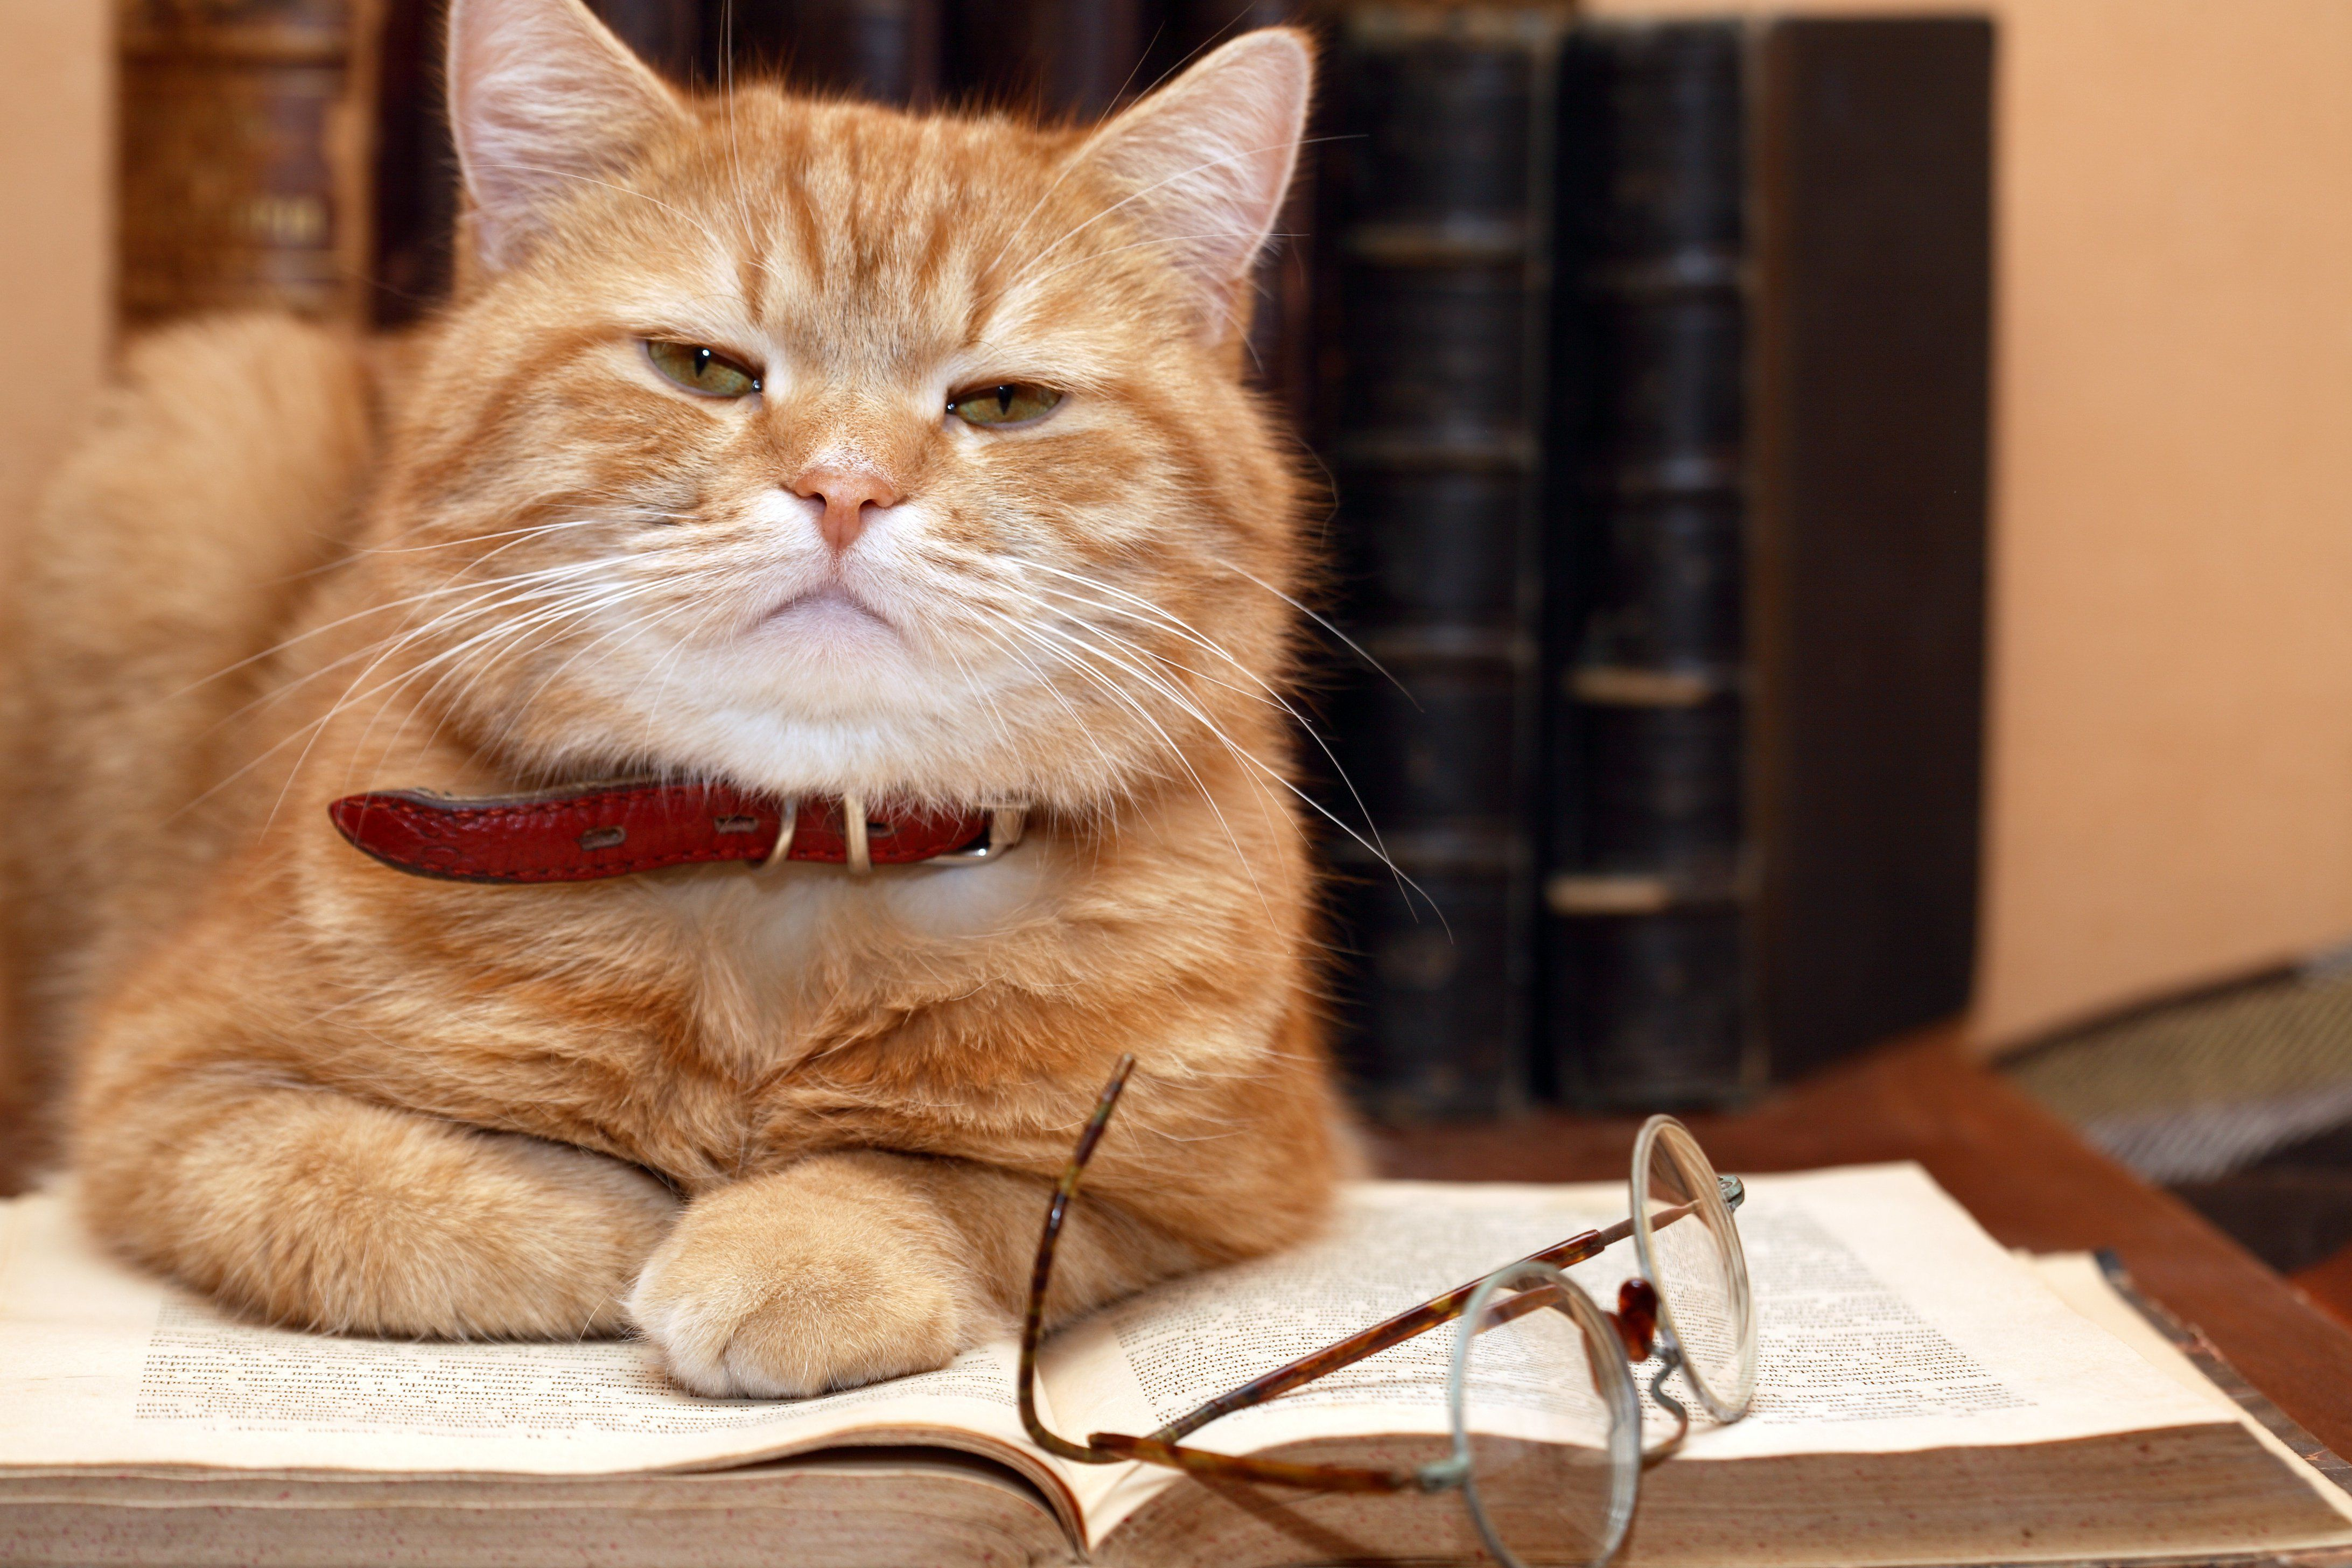 Cats Are Just as Smart as Dogs, Study Suggests